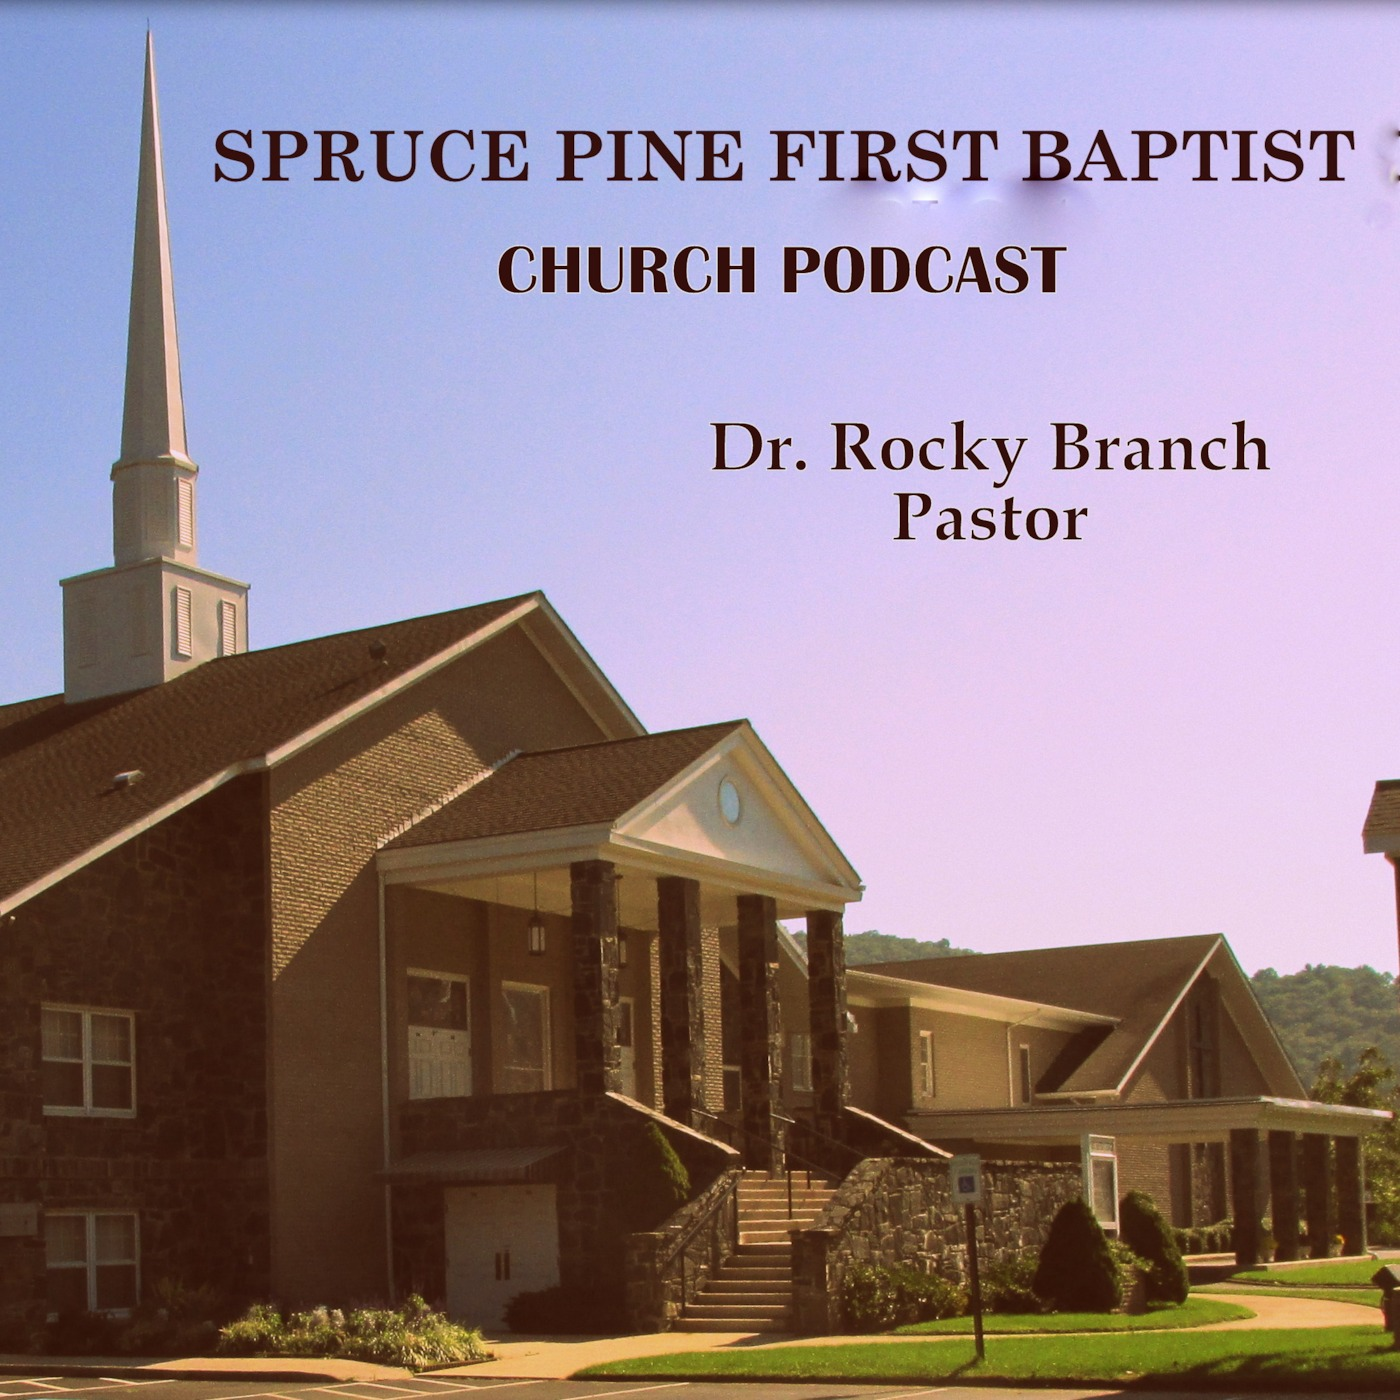 Spruce Pine First Baptist Church Podcast